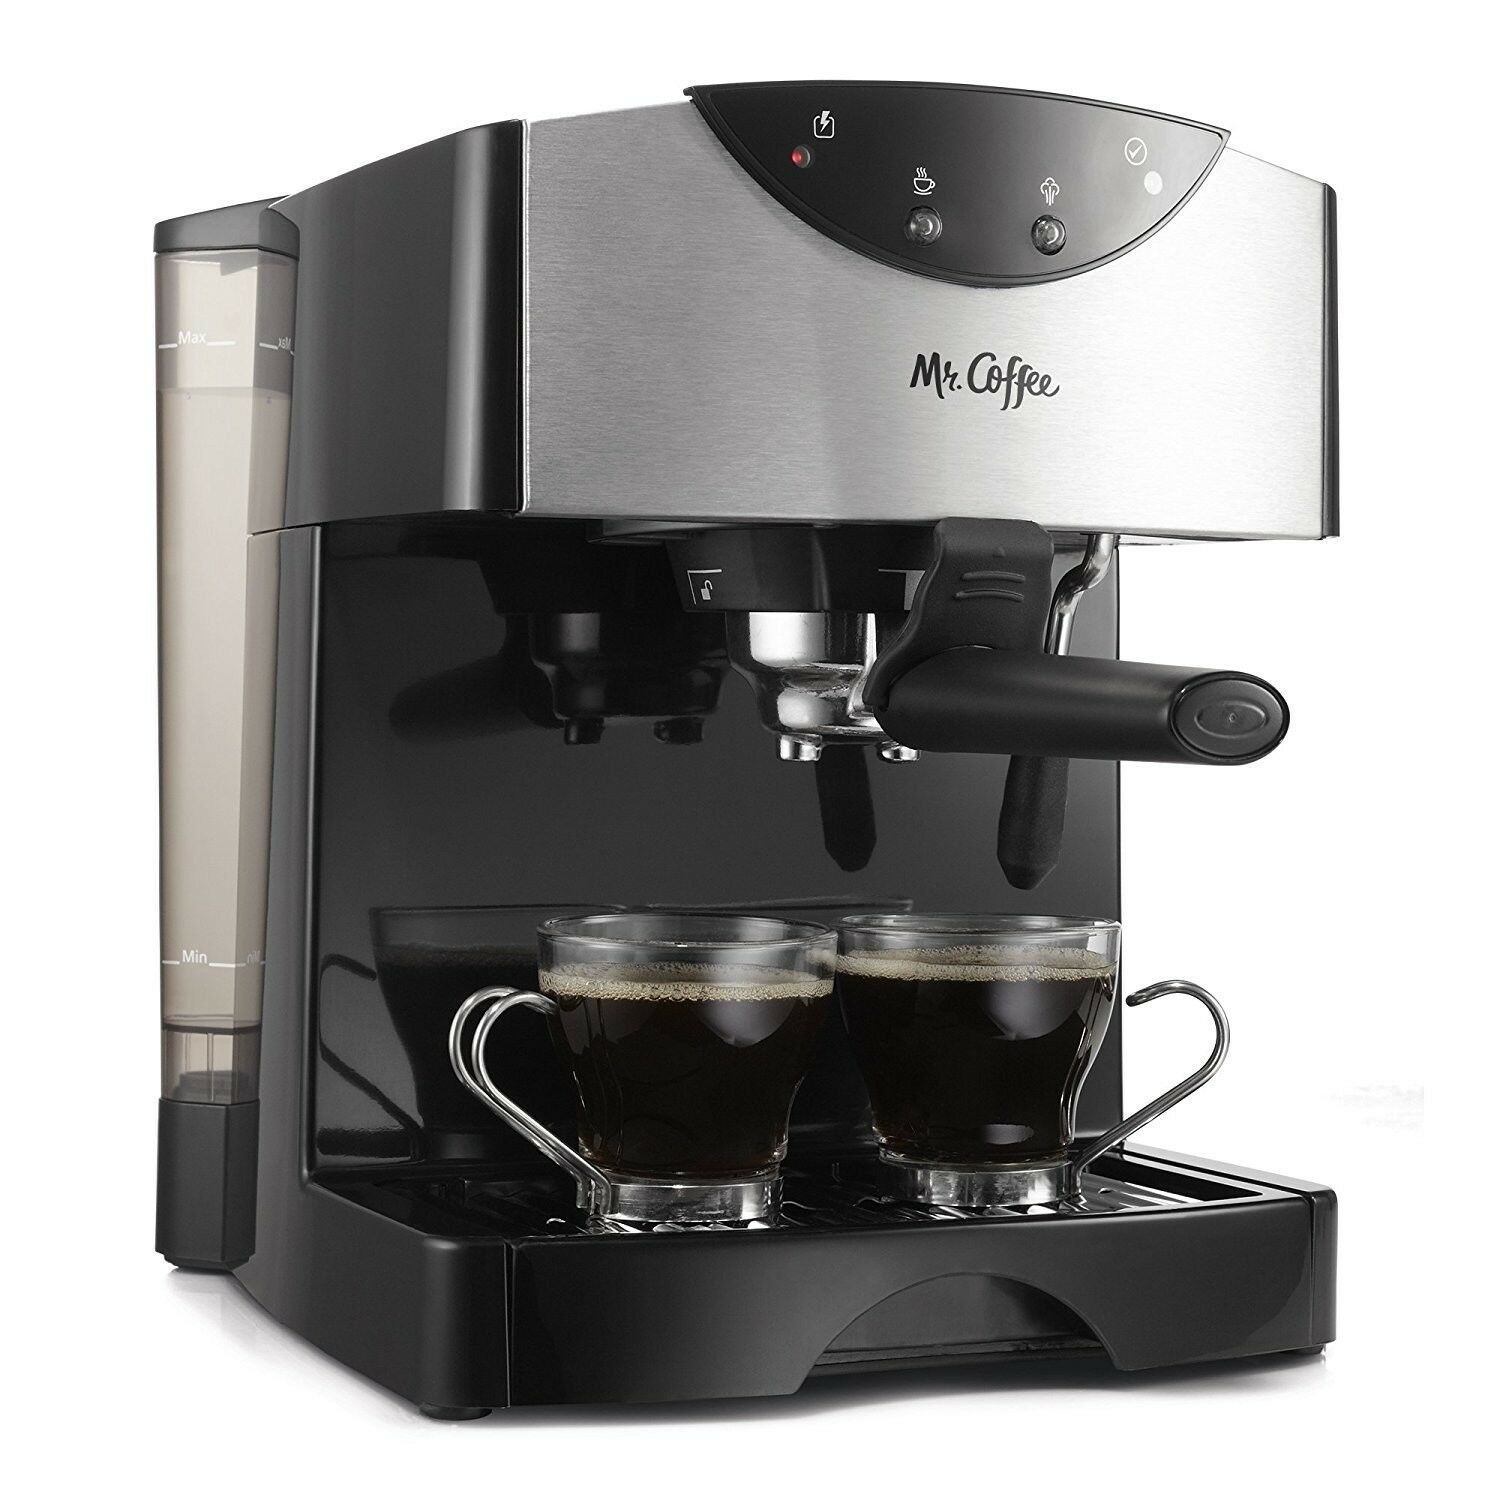 Mr. Coffee 2 Shot POMPE Expresso Cappuccino Maker, Noir